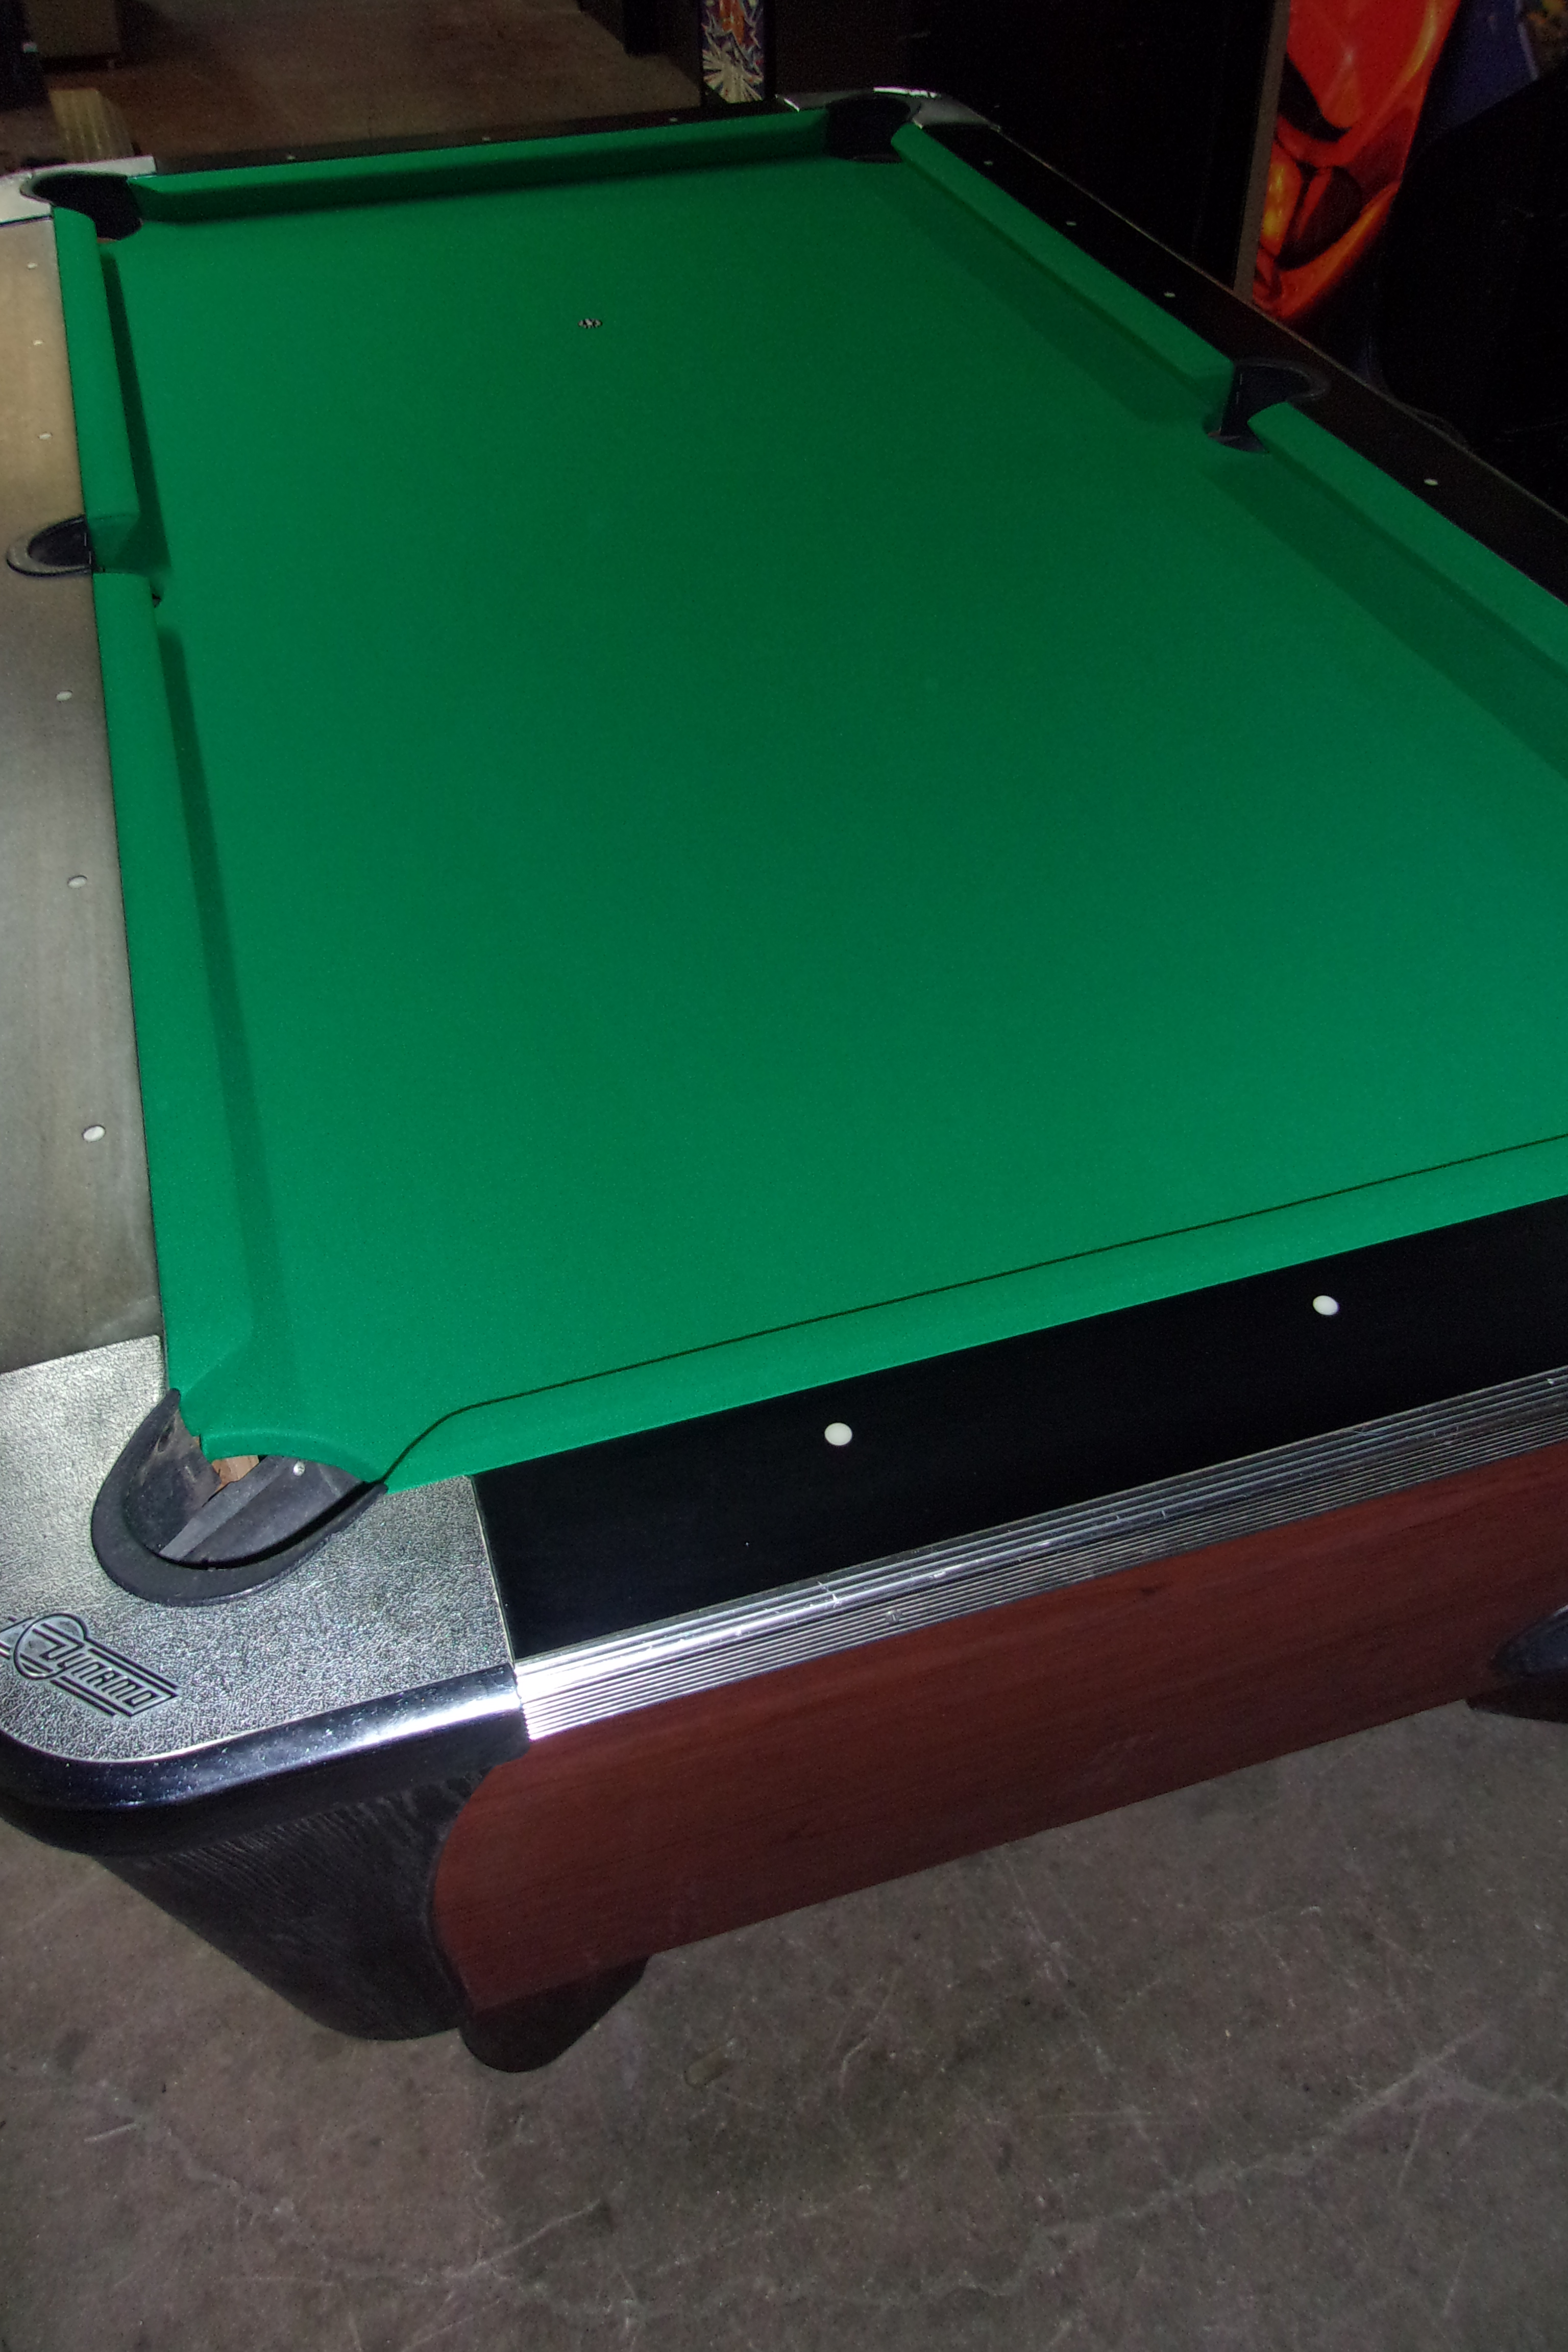 Dynamo Ft Coin Op Pool Table PT Thomas Games - Dynamo coin operated pool table